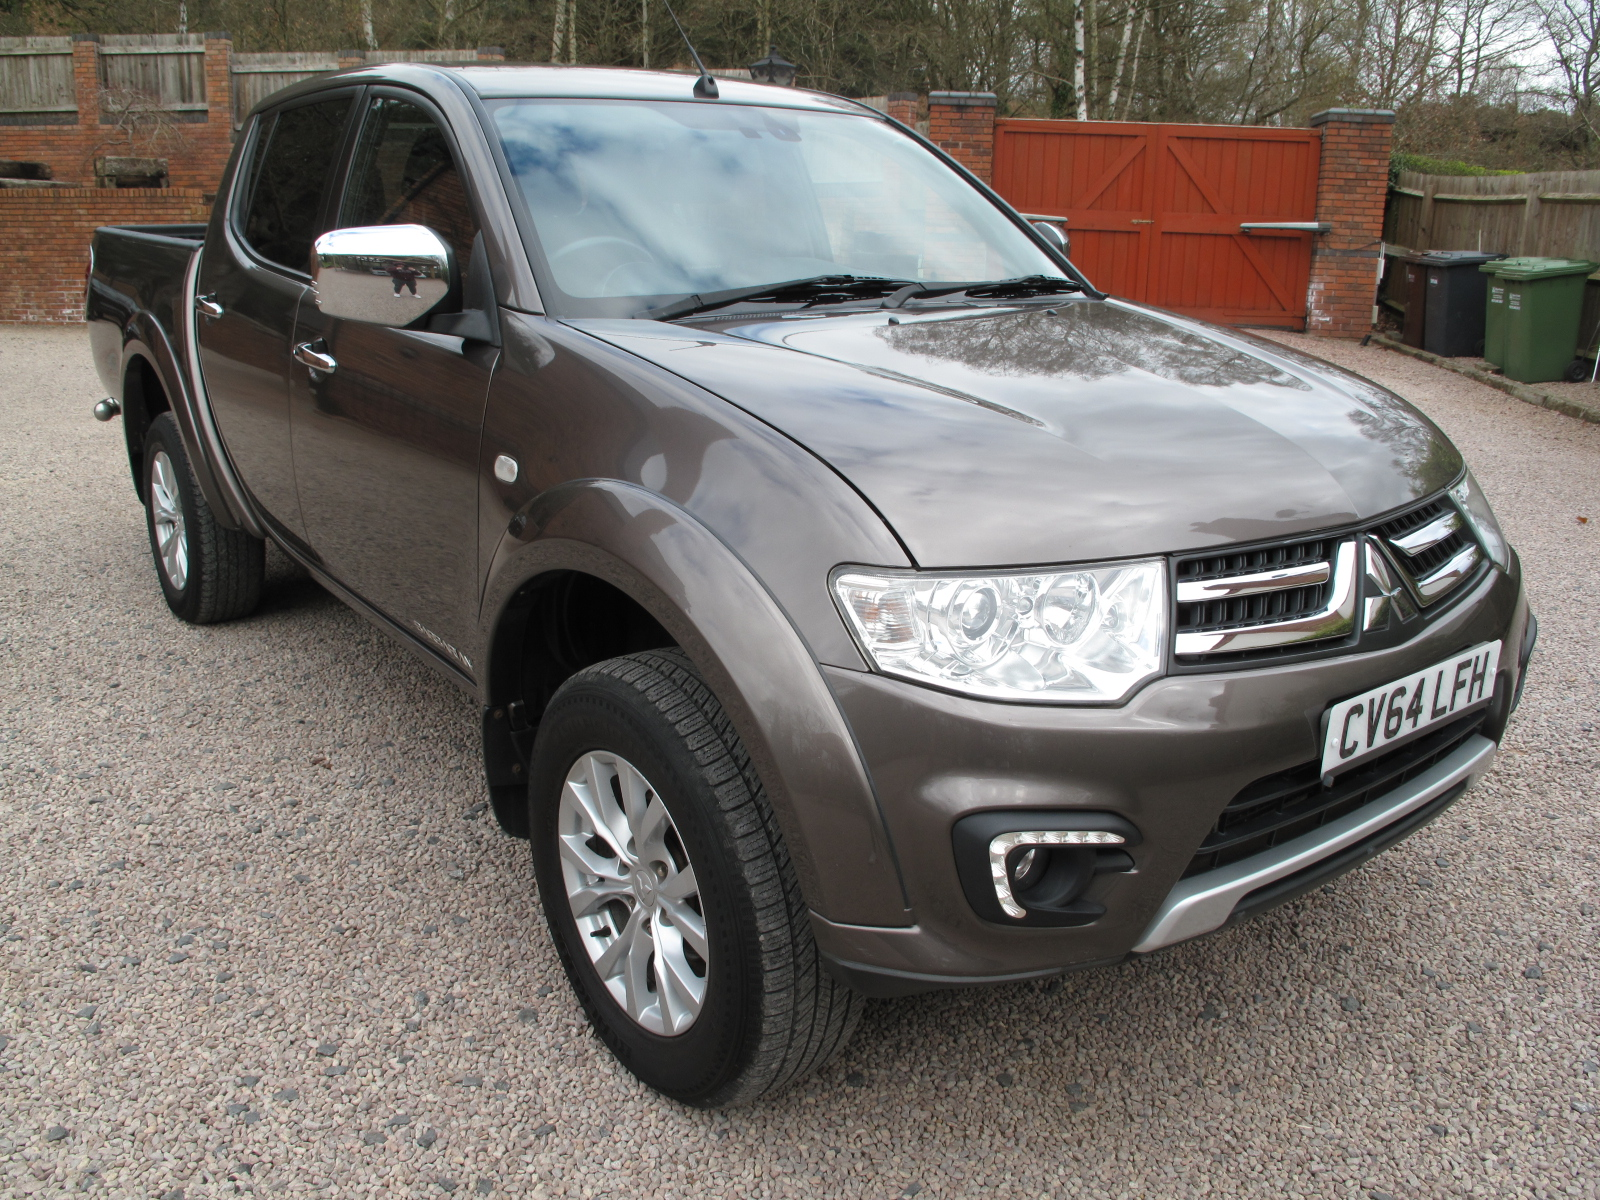 2014 64 Mitsubishi L200 2.5 DI-D CR Barbarian 176 LBDouble Cab Pickup 4WD ABSOLUTELY PRISTINE! ONLY USED AS A CAR! LOW MILES! NO VAT!